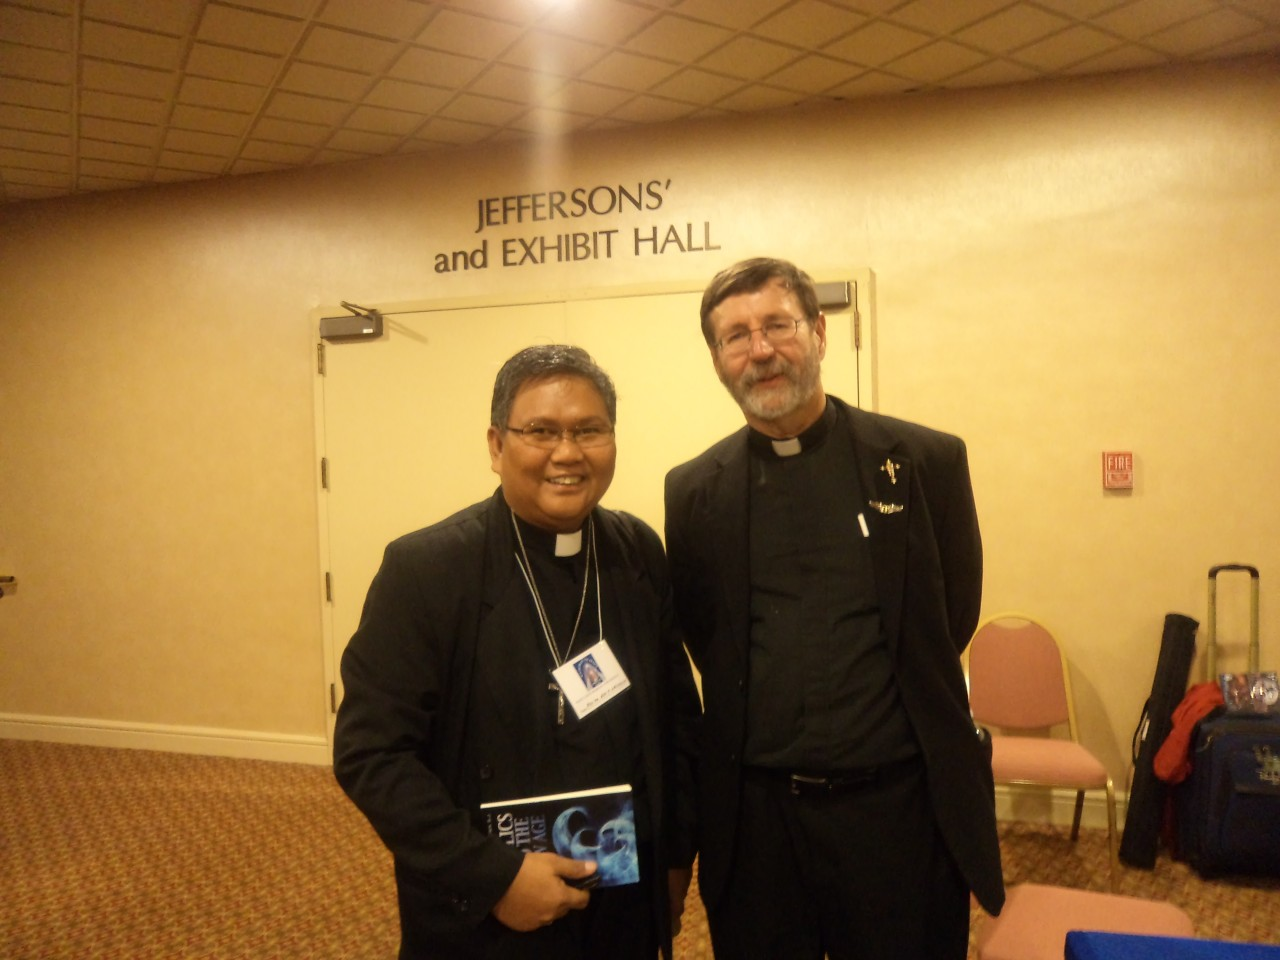 FR. ABE WITH FR. MITCH PACWA, S.J. renown Apologist, TV host and Author